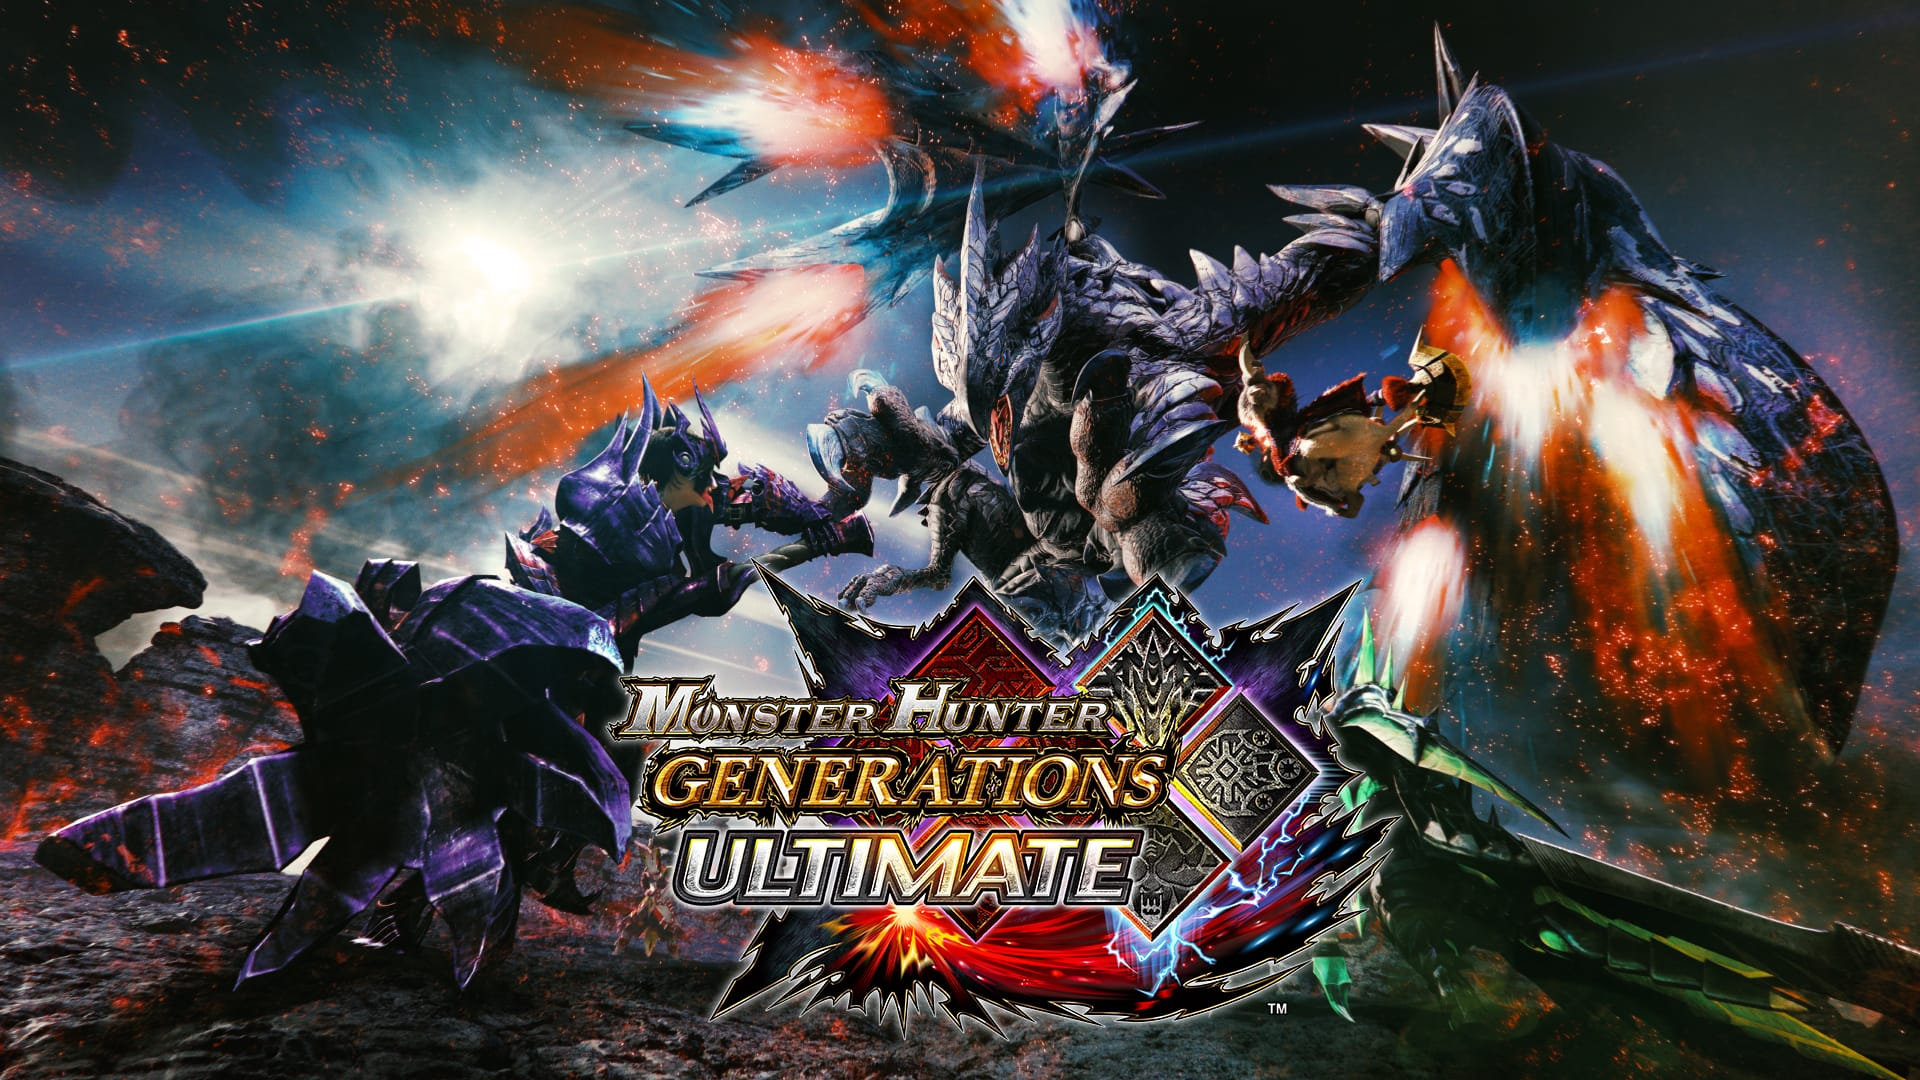 Monster Hunter Generations Ultimate (Nintendo Switch Digital Download) $15.99 via Nintendo eShop